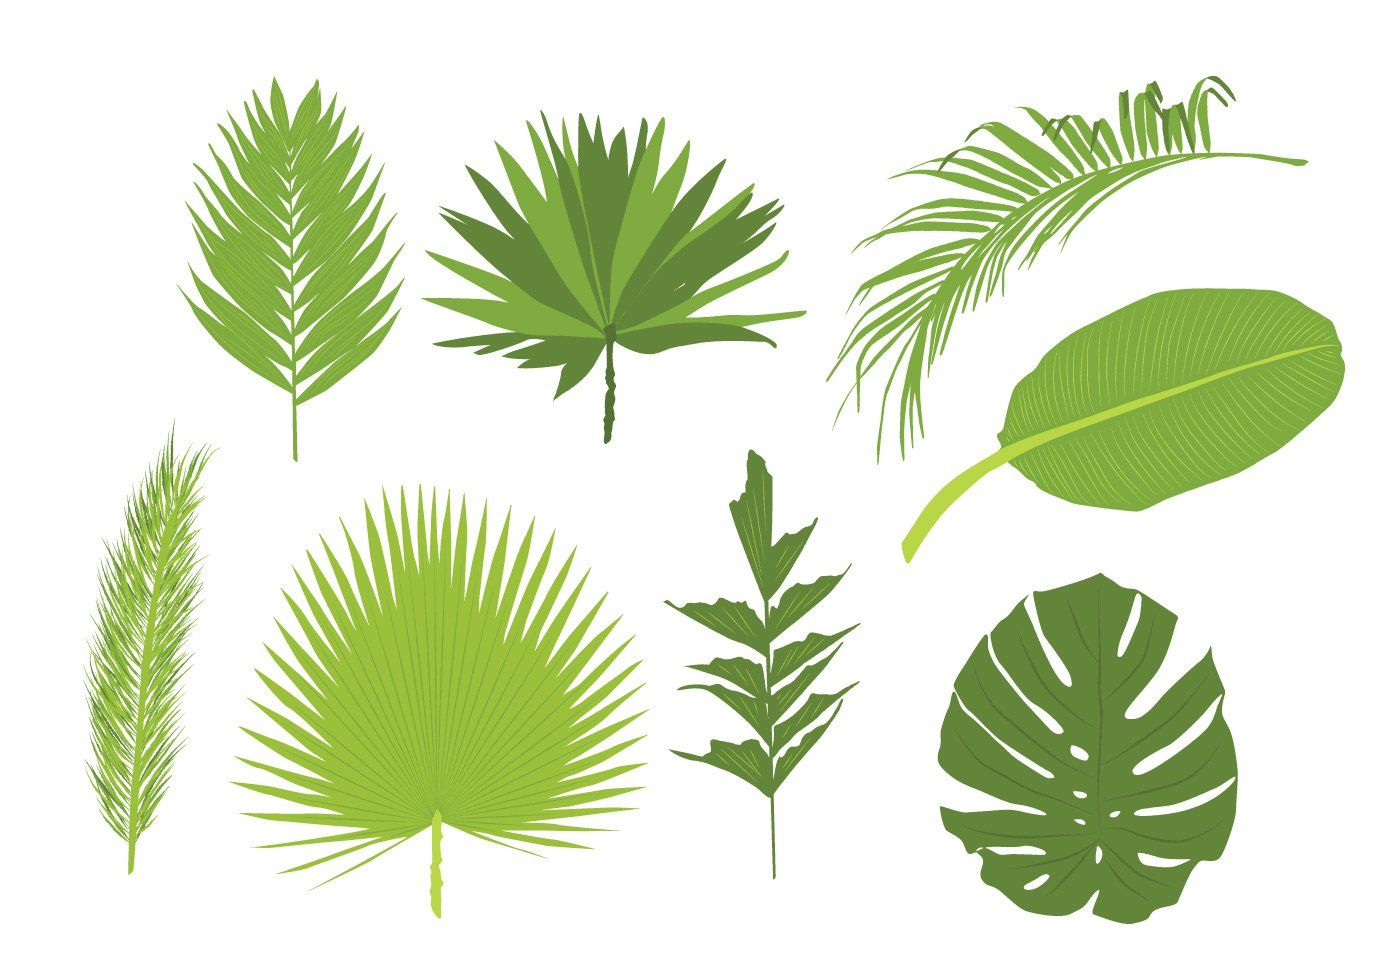 Jungle Leaves Free Vector Art (3293 Free Downloads